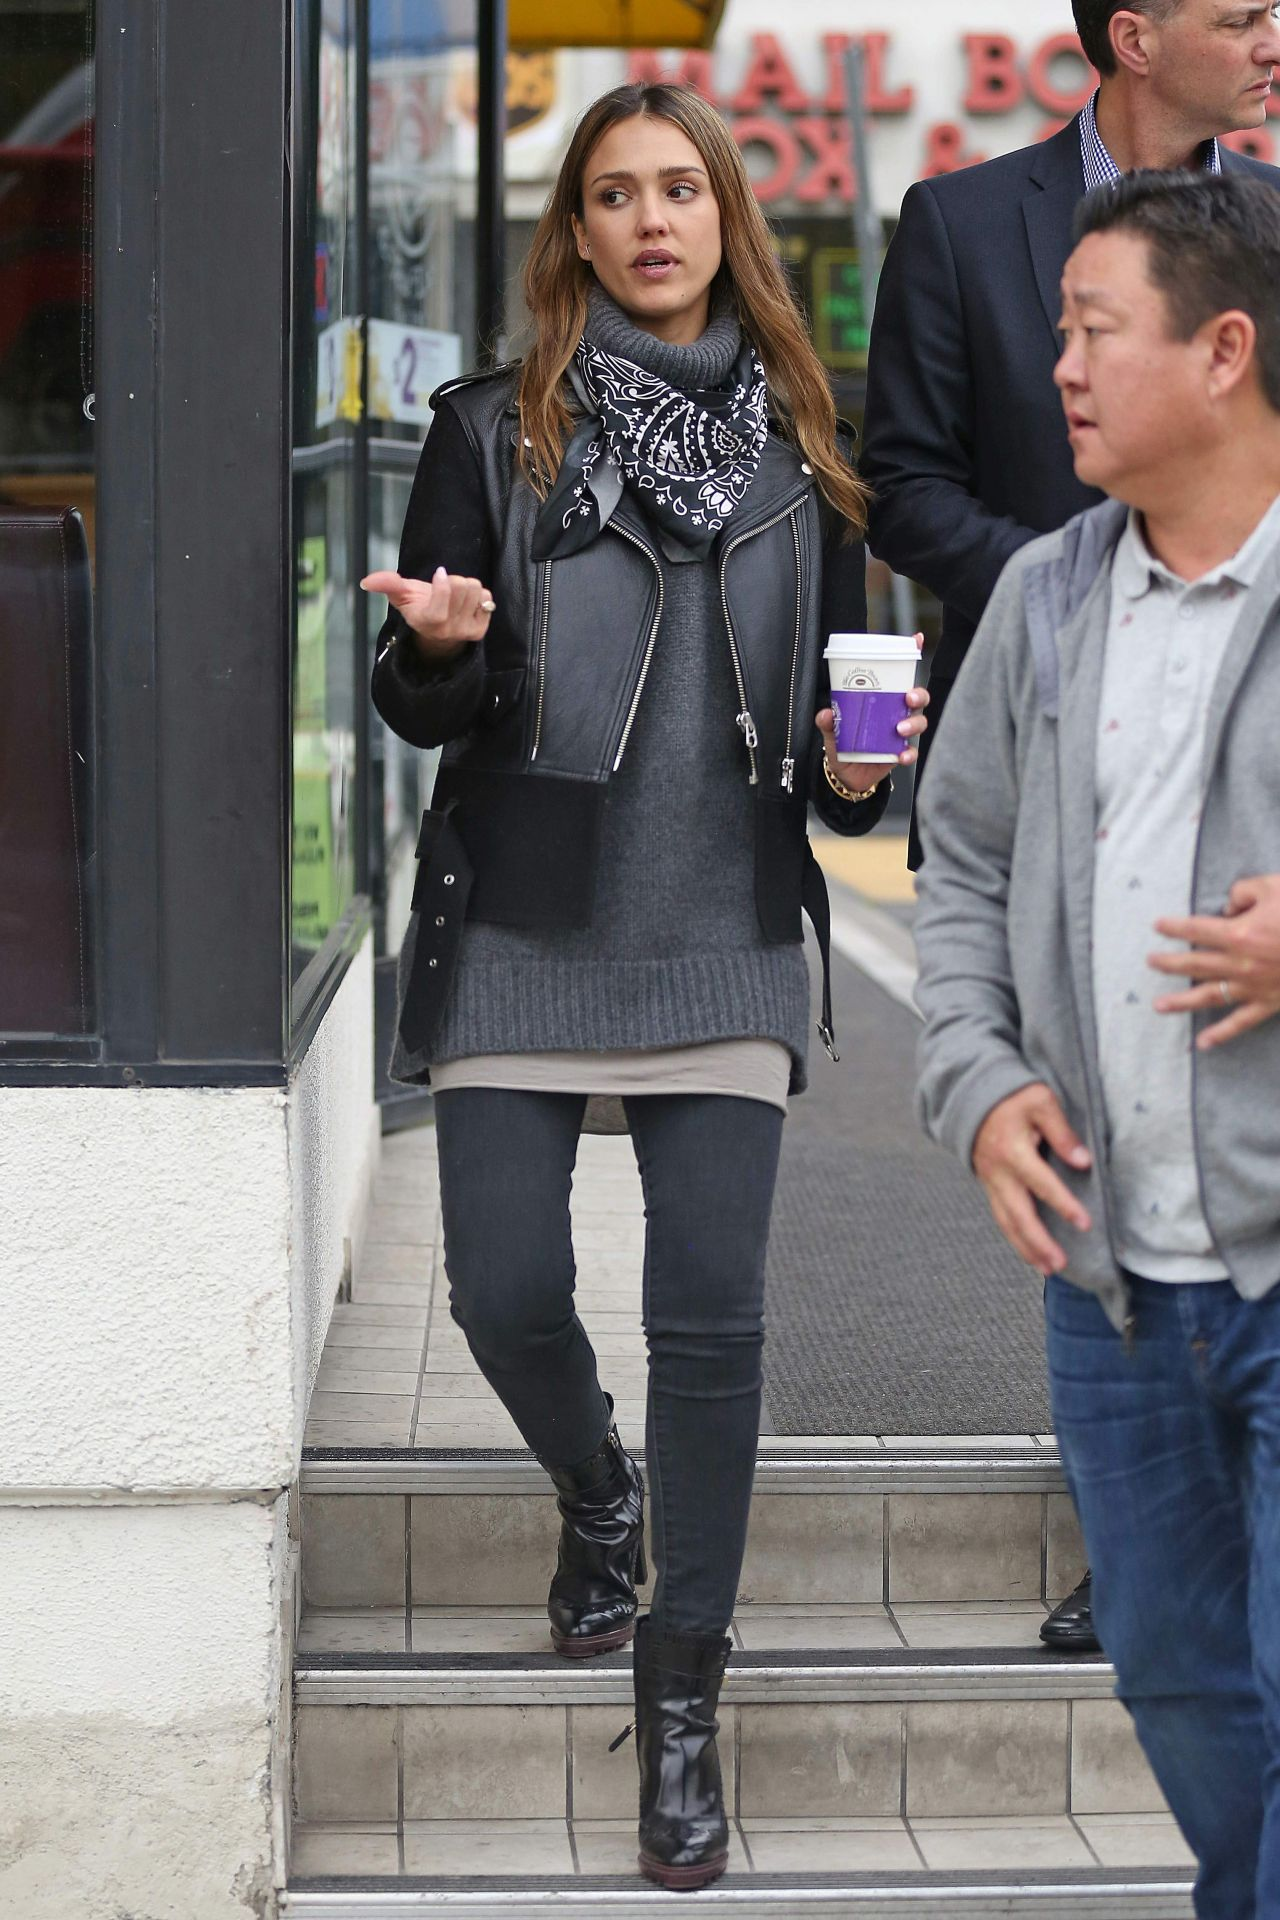 https://i1.wp.com/celebmafia.com/wp-content/uploads/2017/01/jessica-alba-urban-style-stopped-by-a-coffee-shop-in-los-angeles-1-3-2017-6.jpg